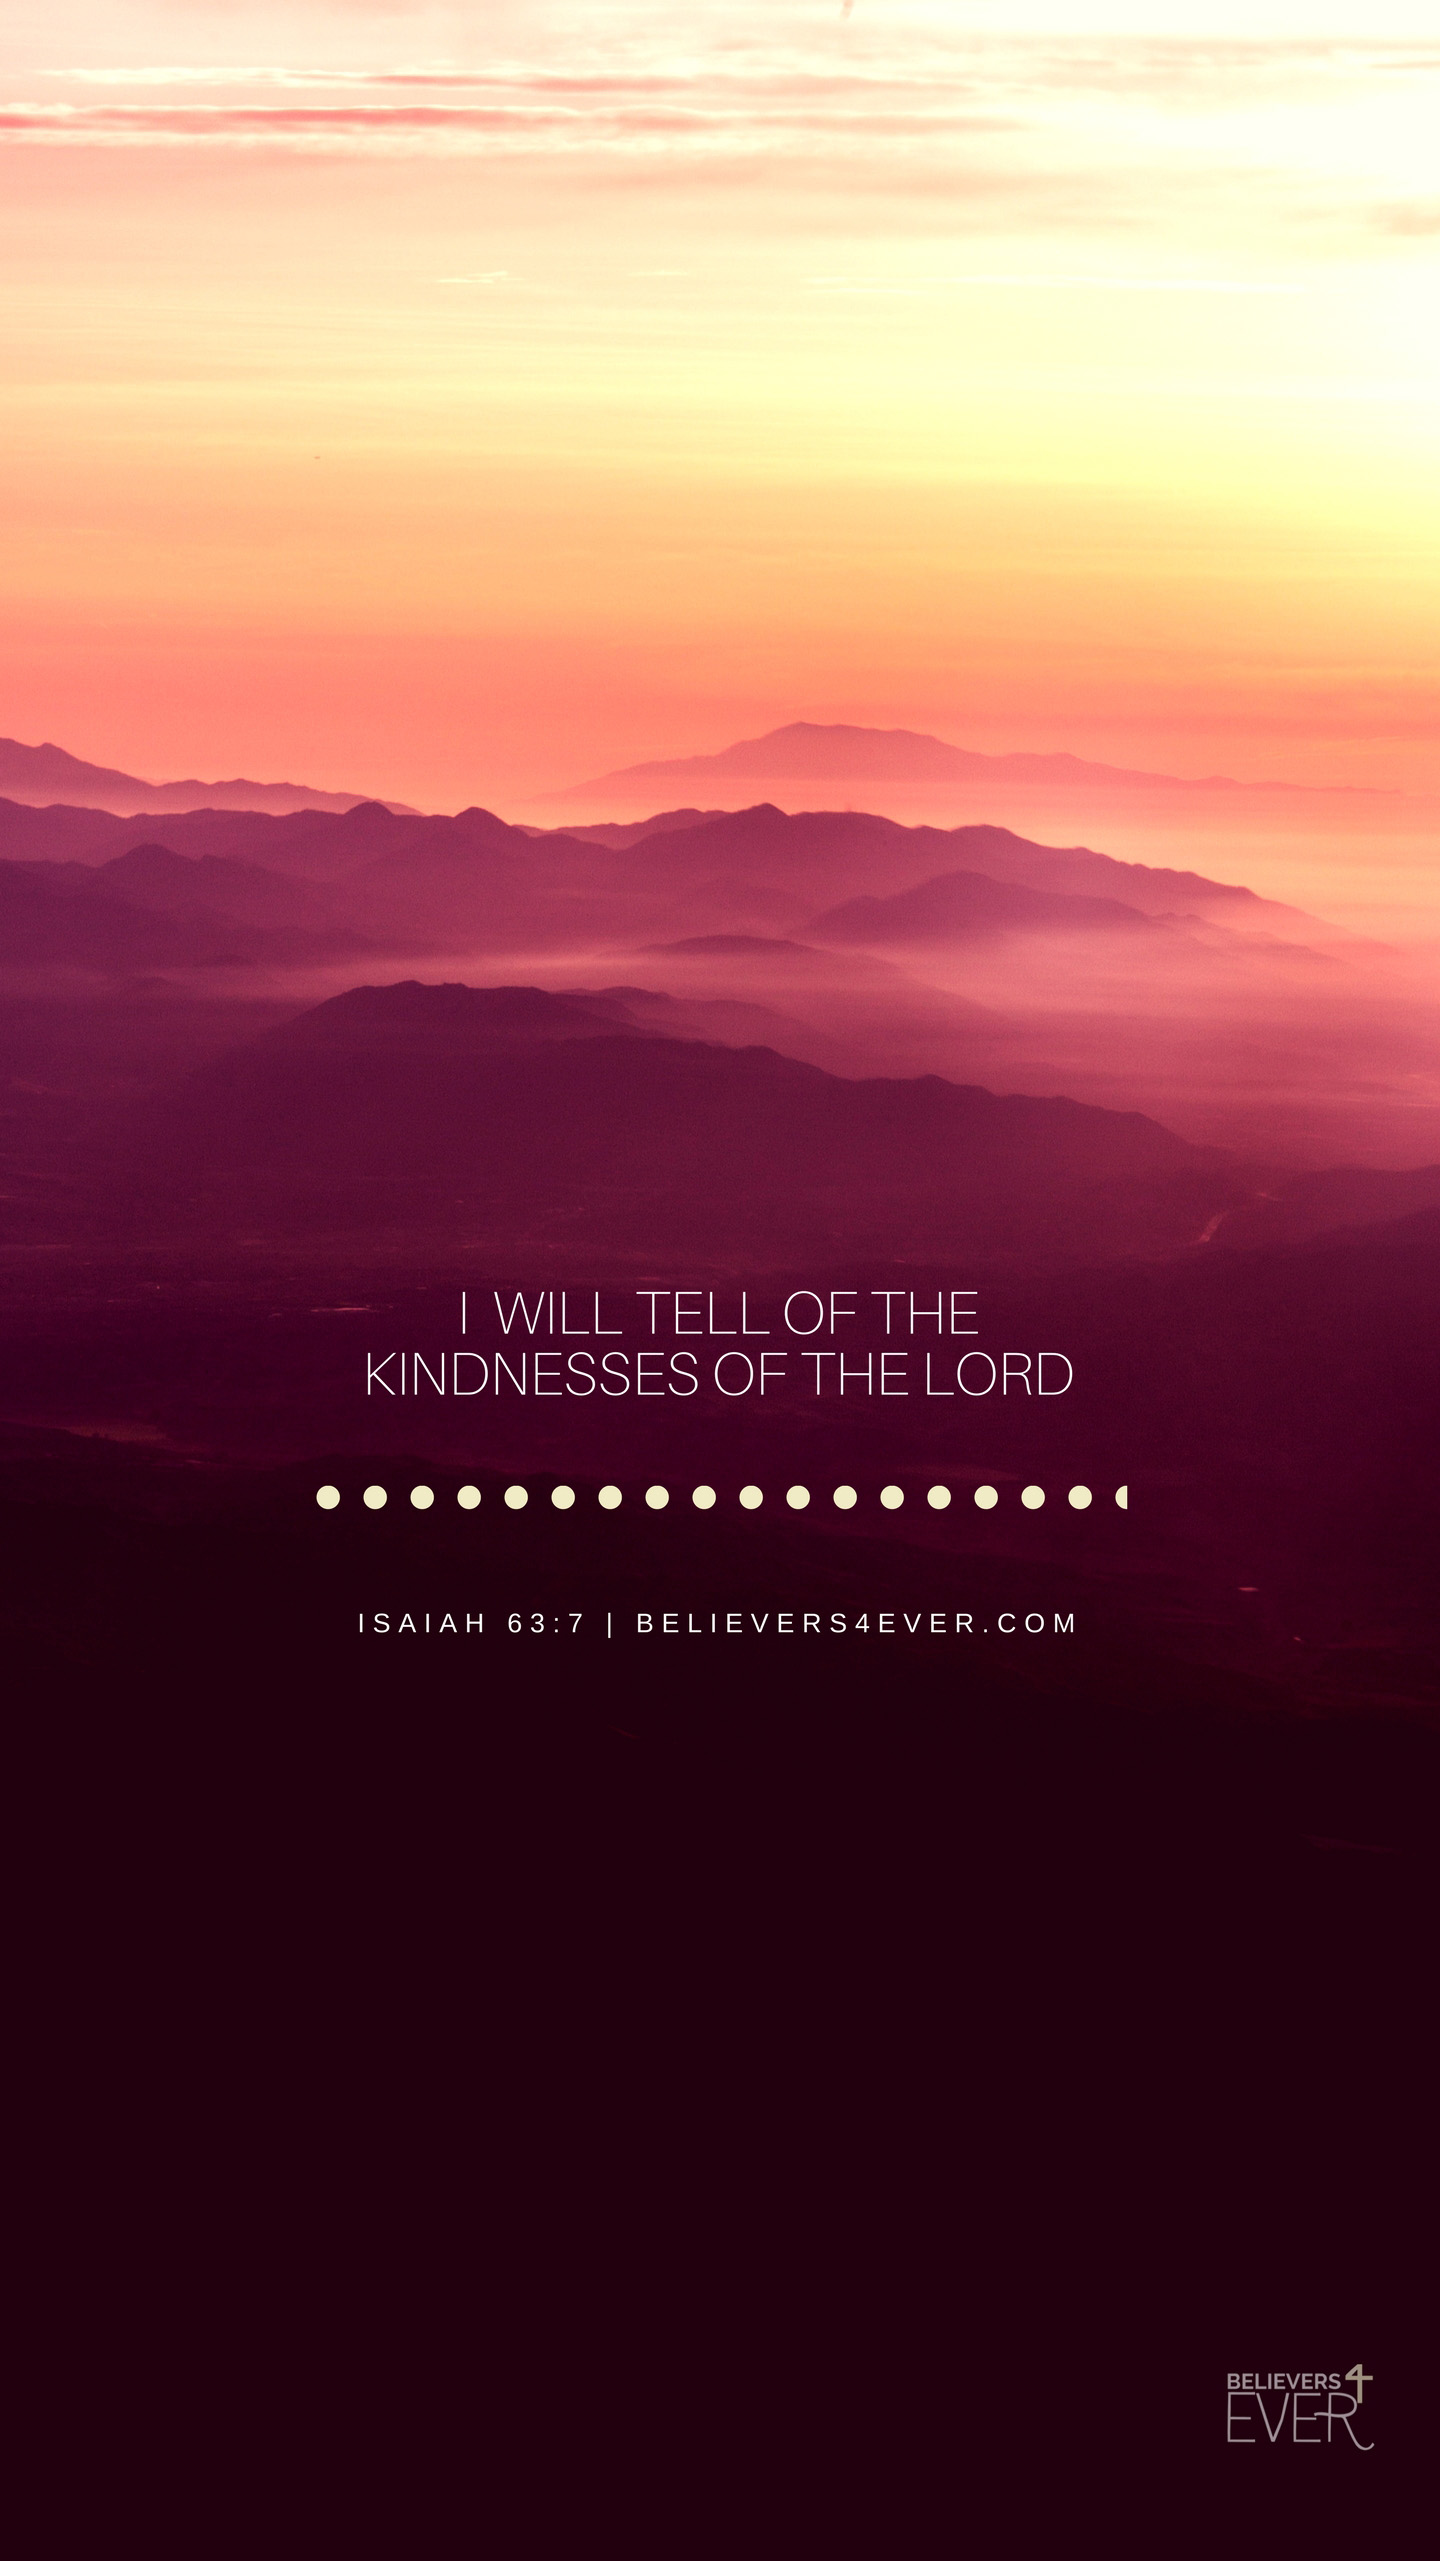 I will tell of the kindnesses of the Lord.